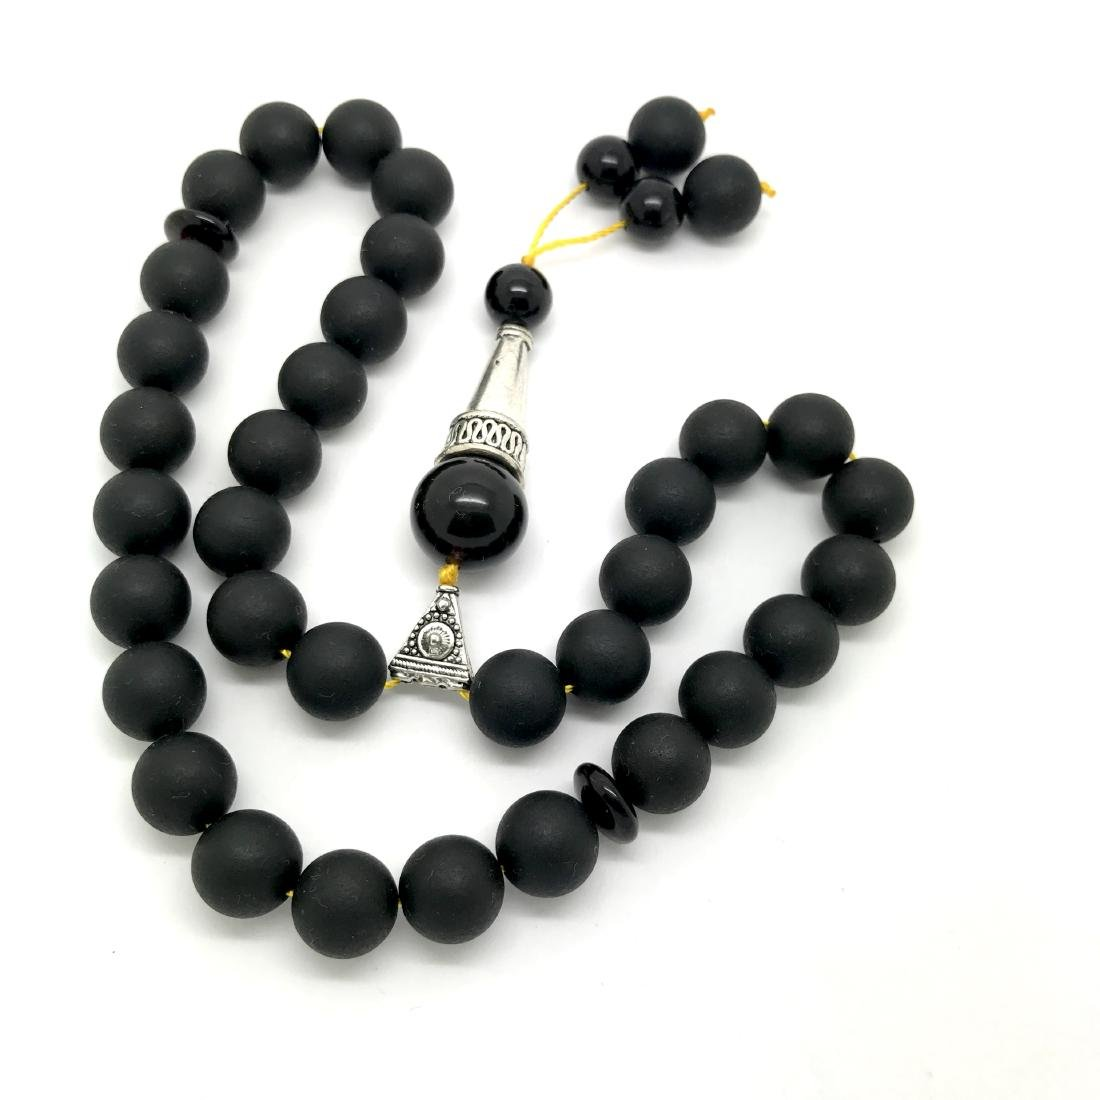 Misbaha tesbih Baltic amber black 33 beads ø10mm 27 - 3